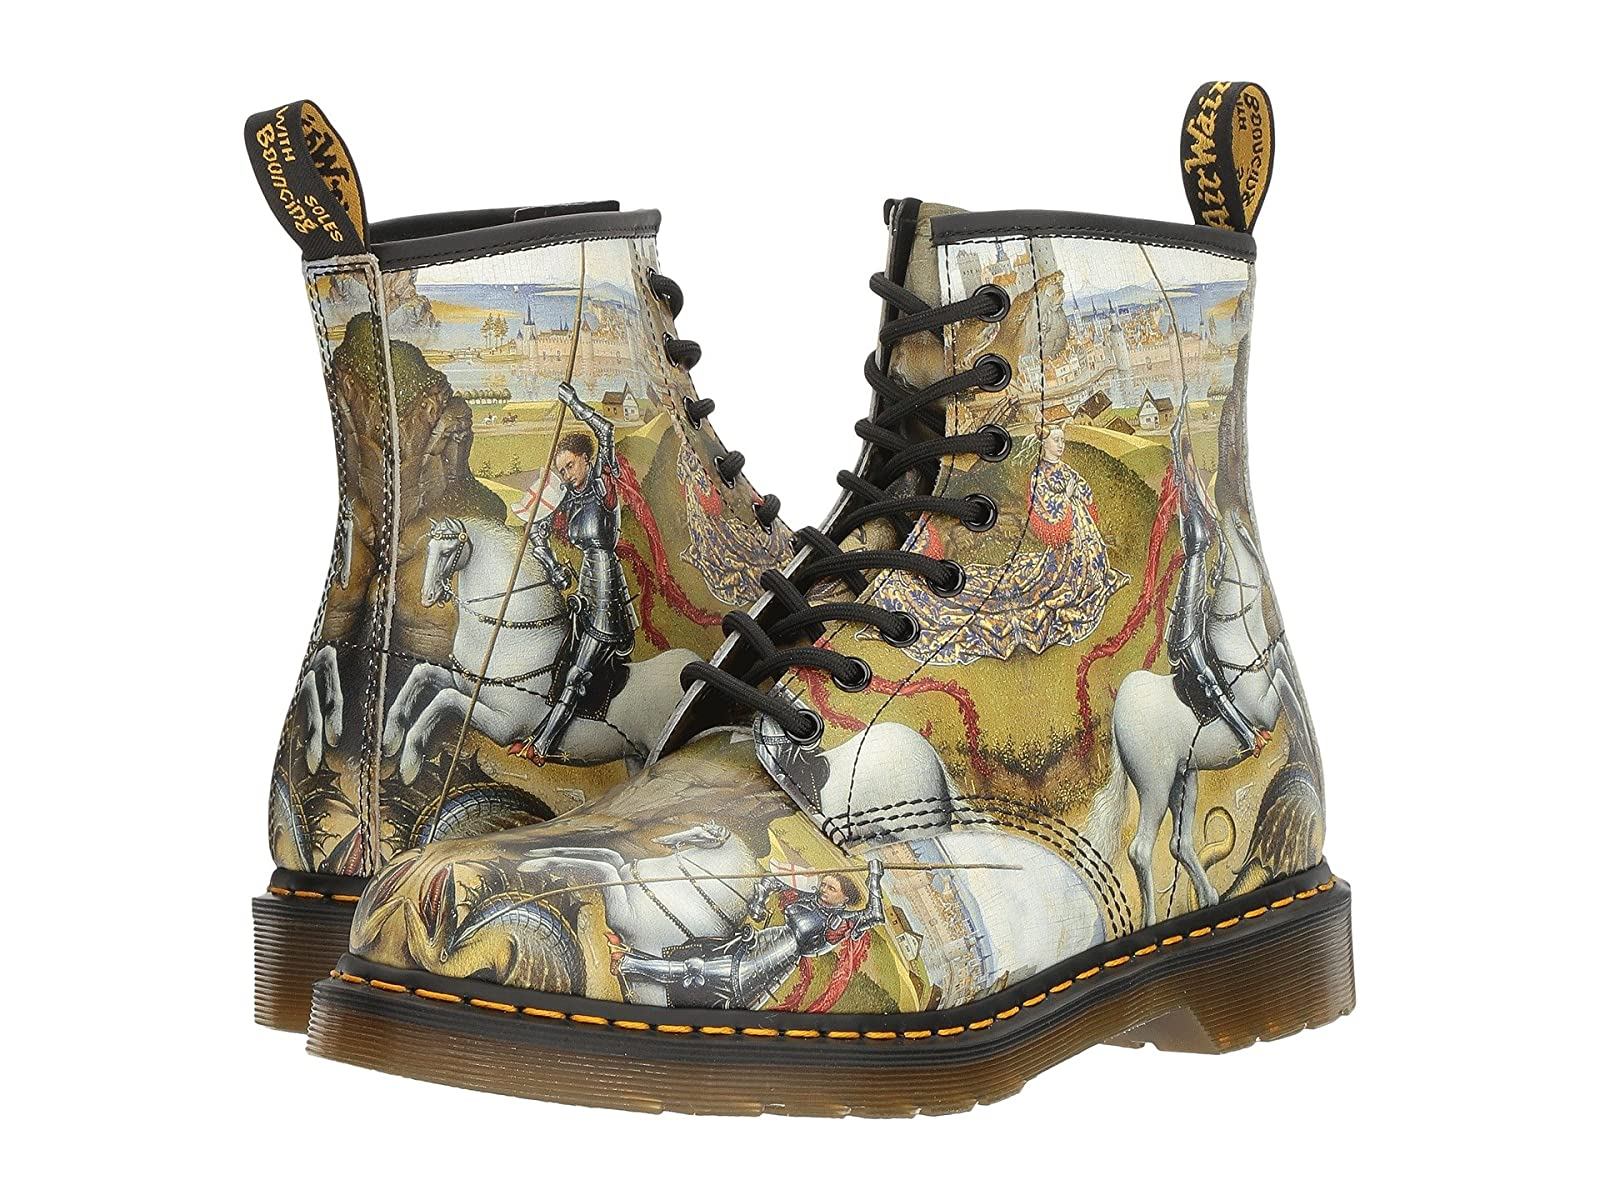 Dr. Martens 1460Cheap and distinctive eye-catching shoes